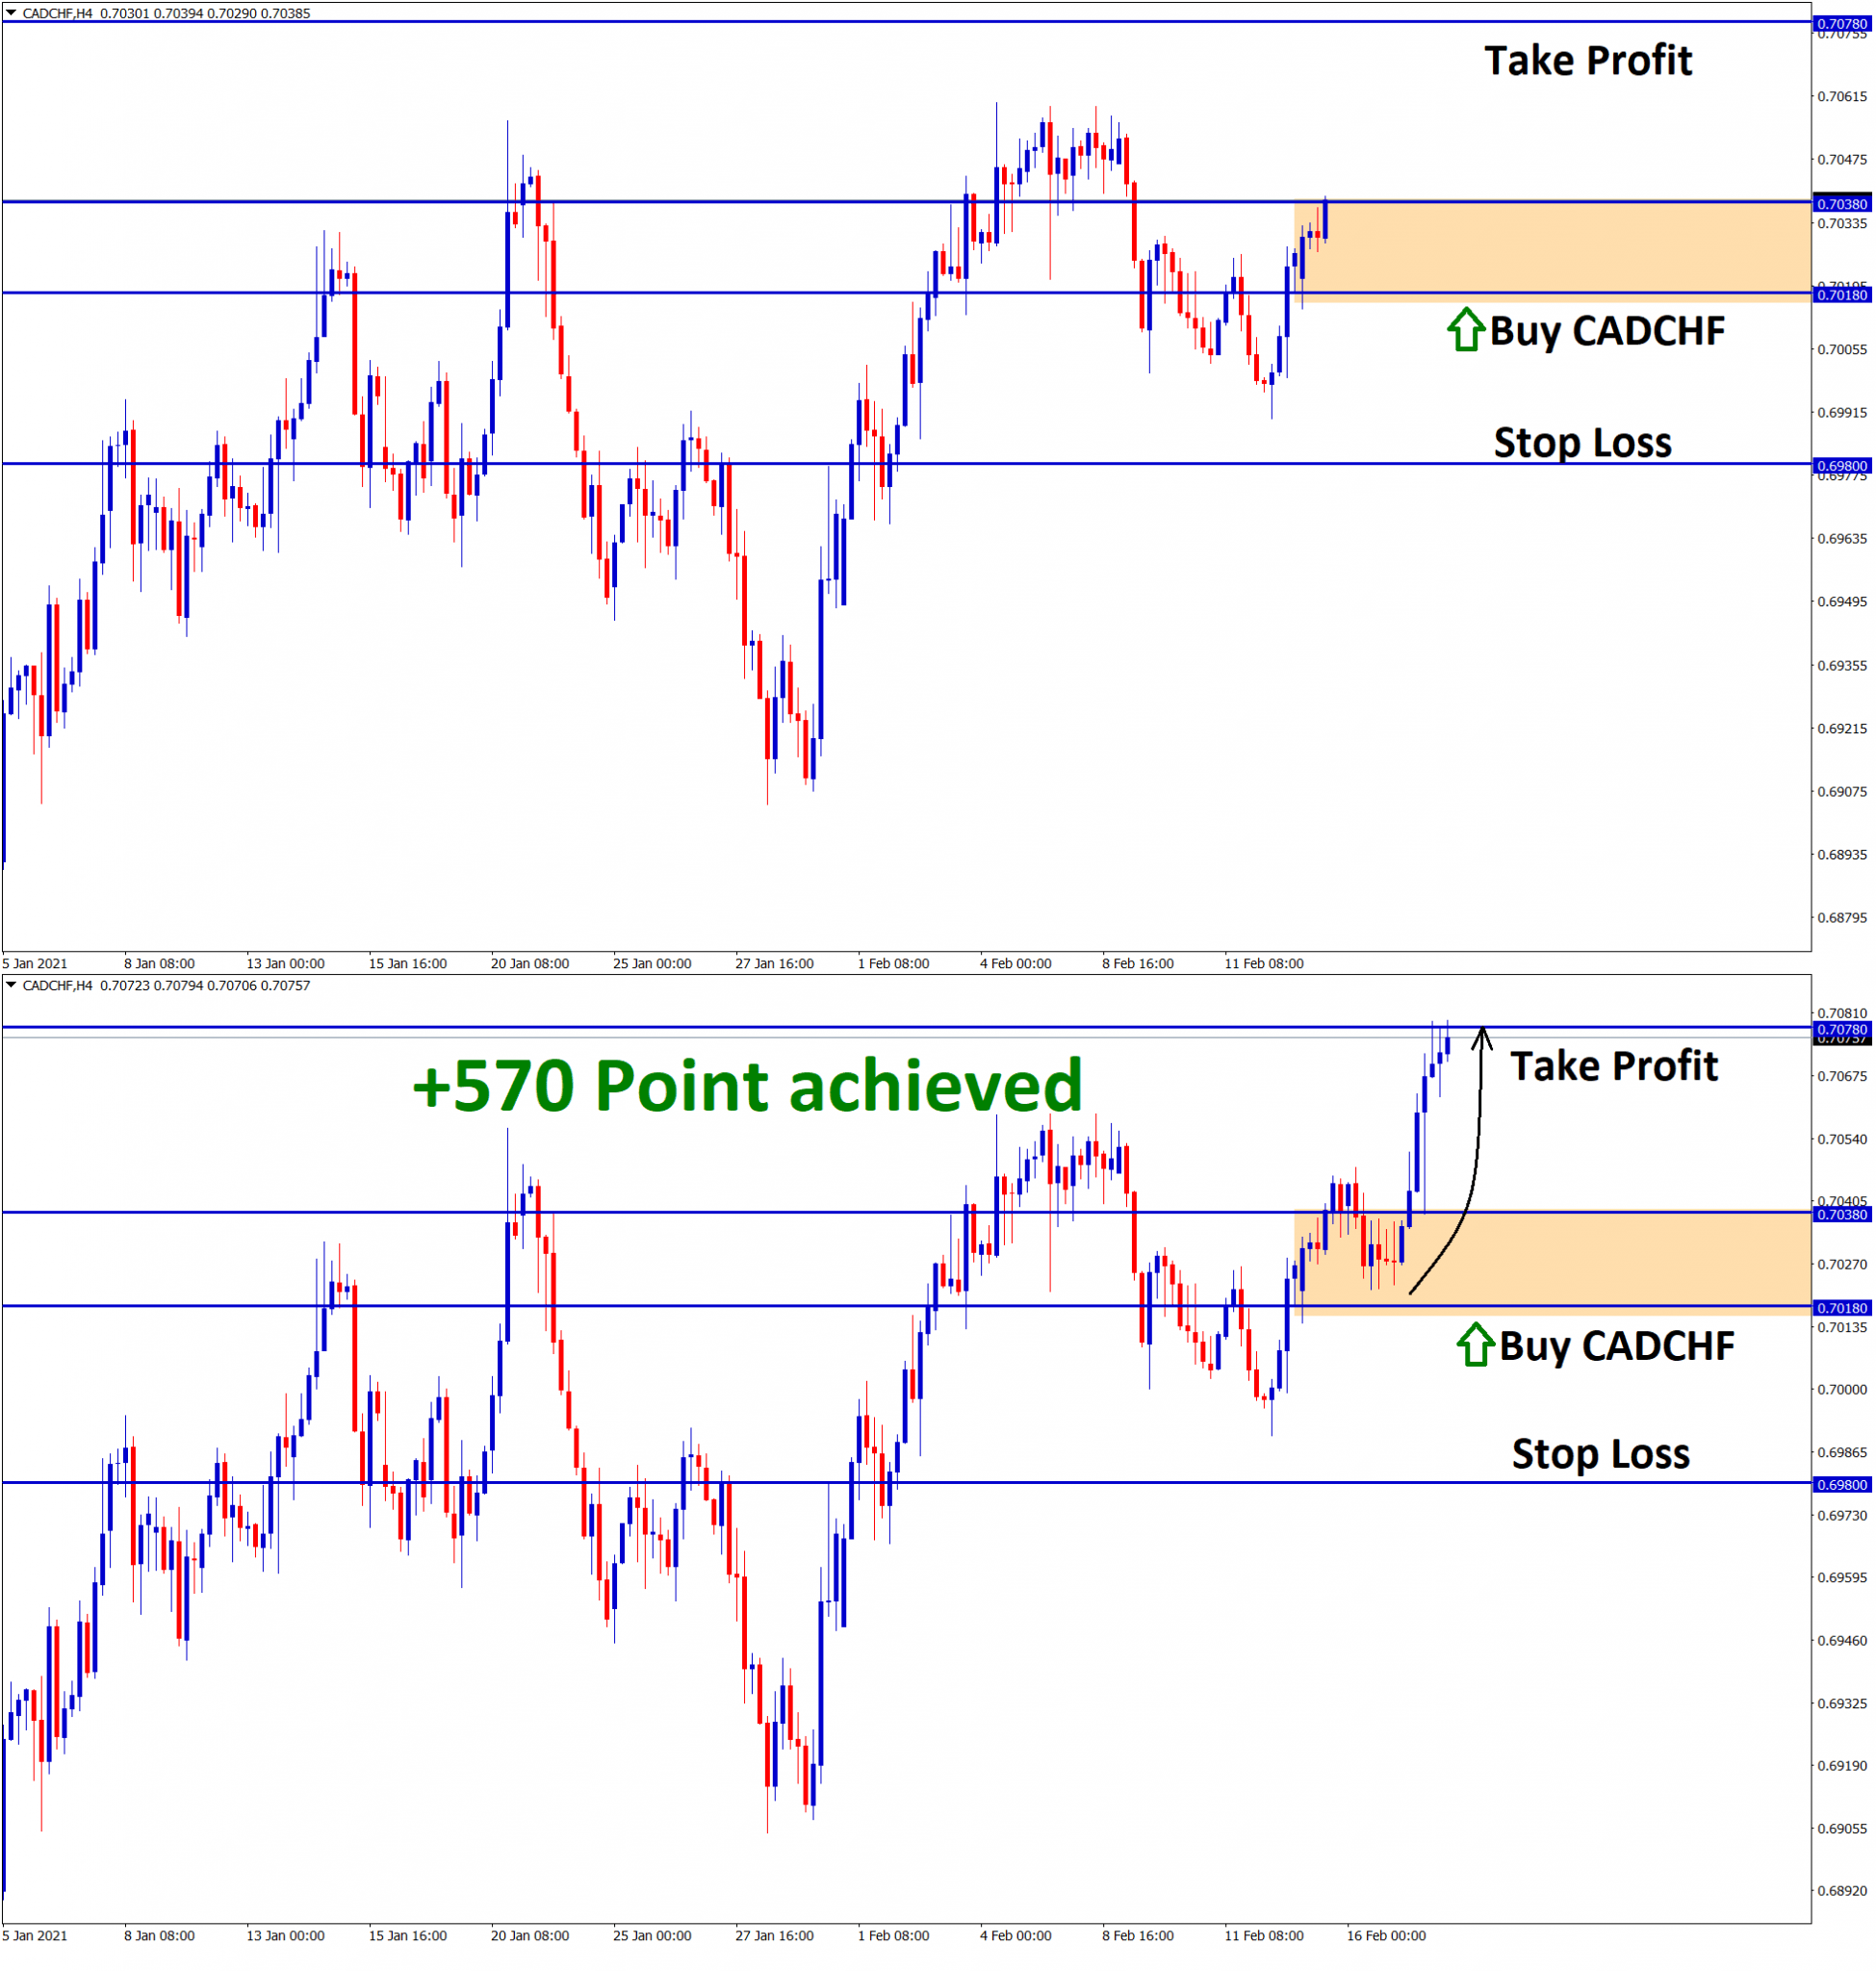 570 Pionts achived in CADCHF 1